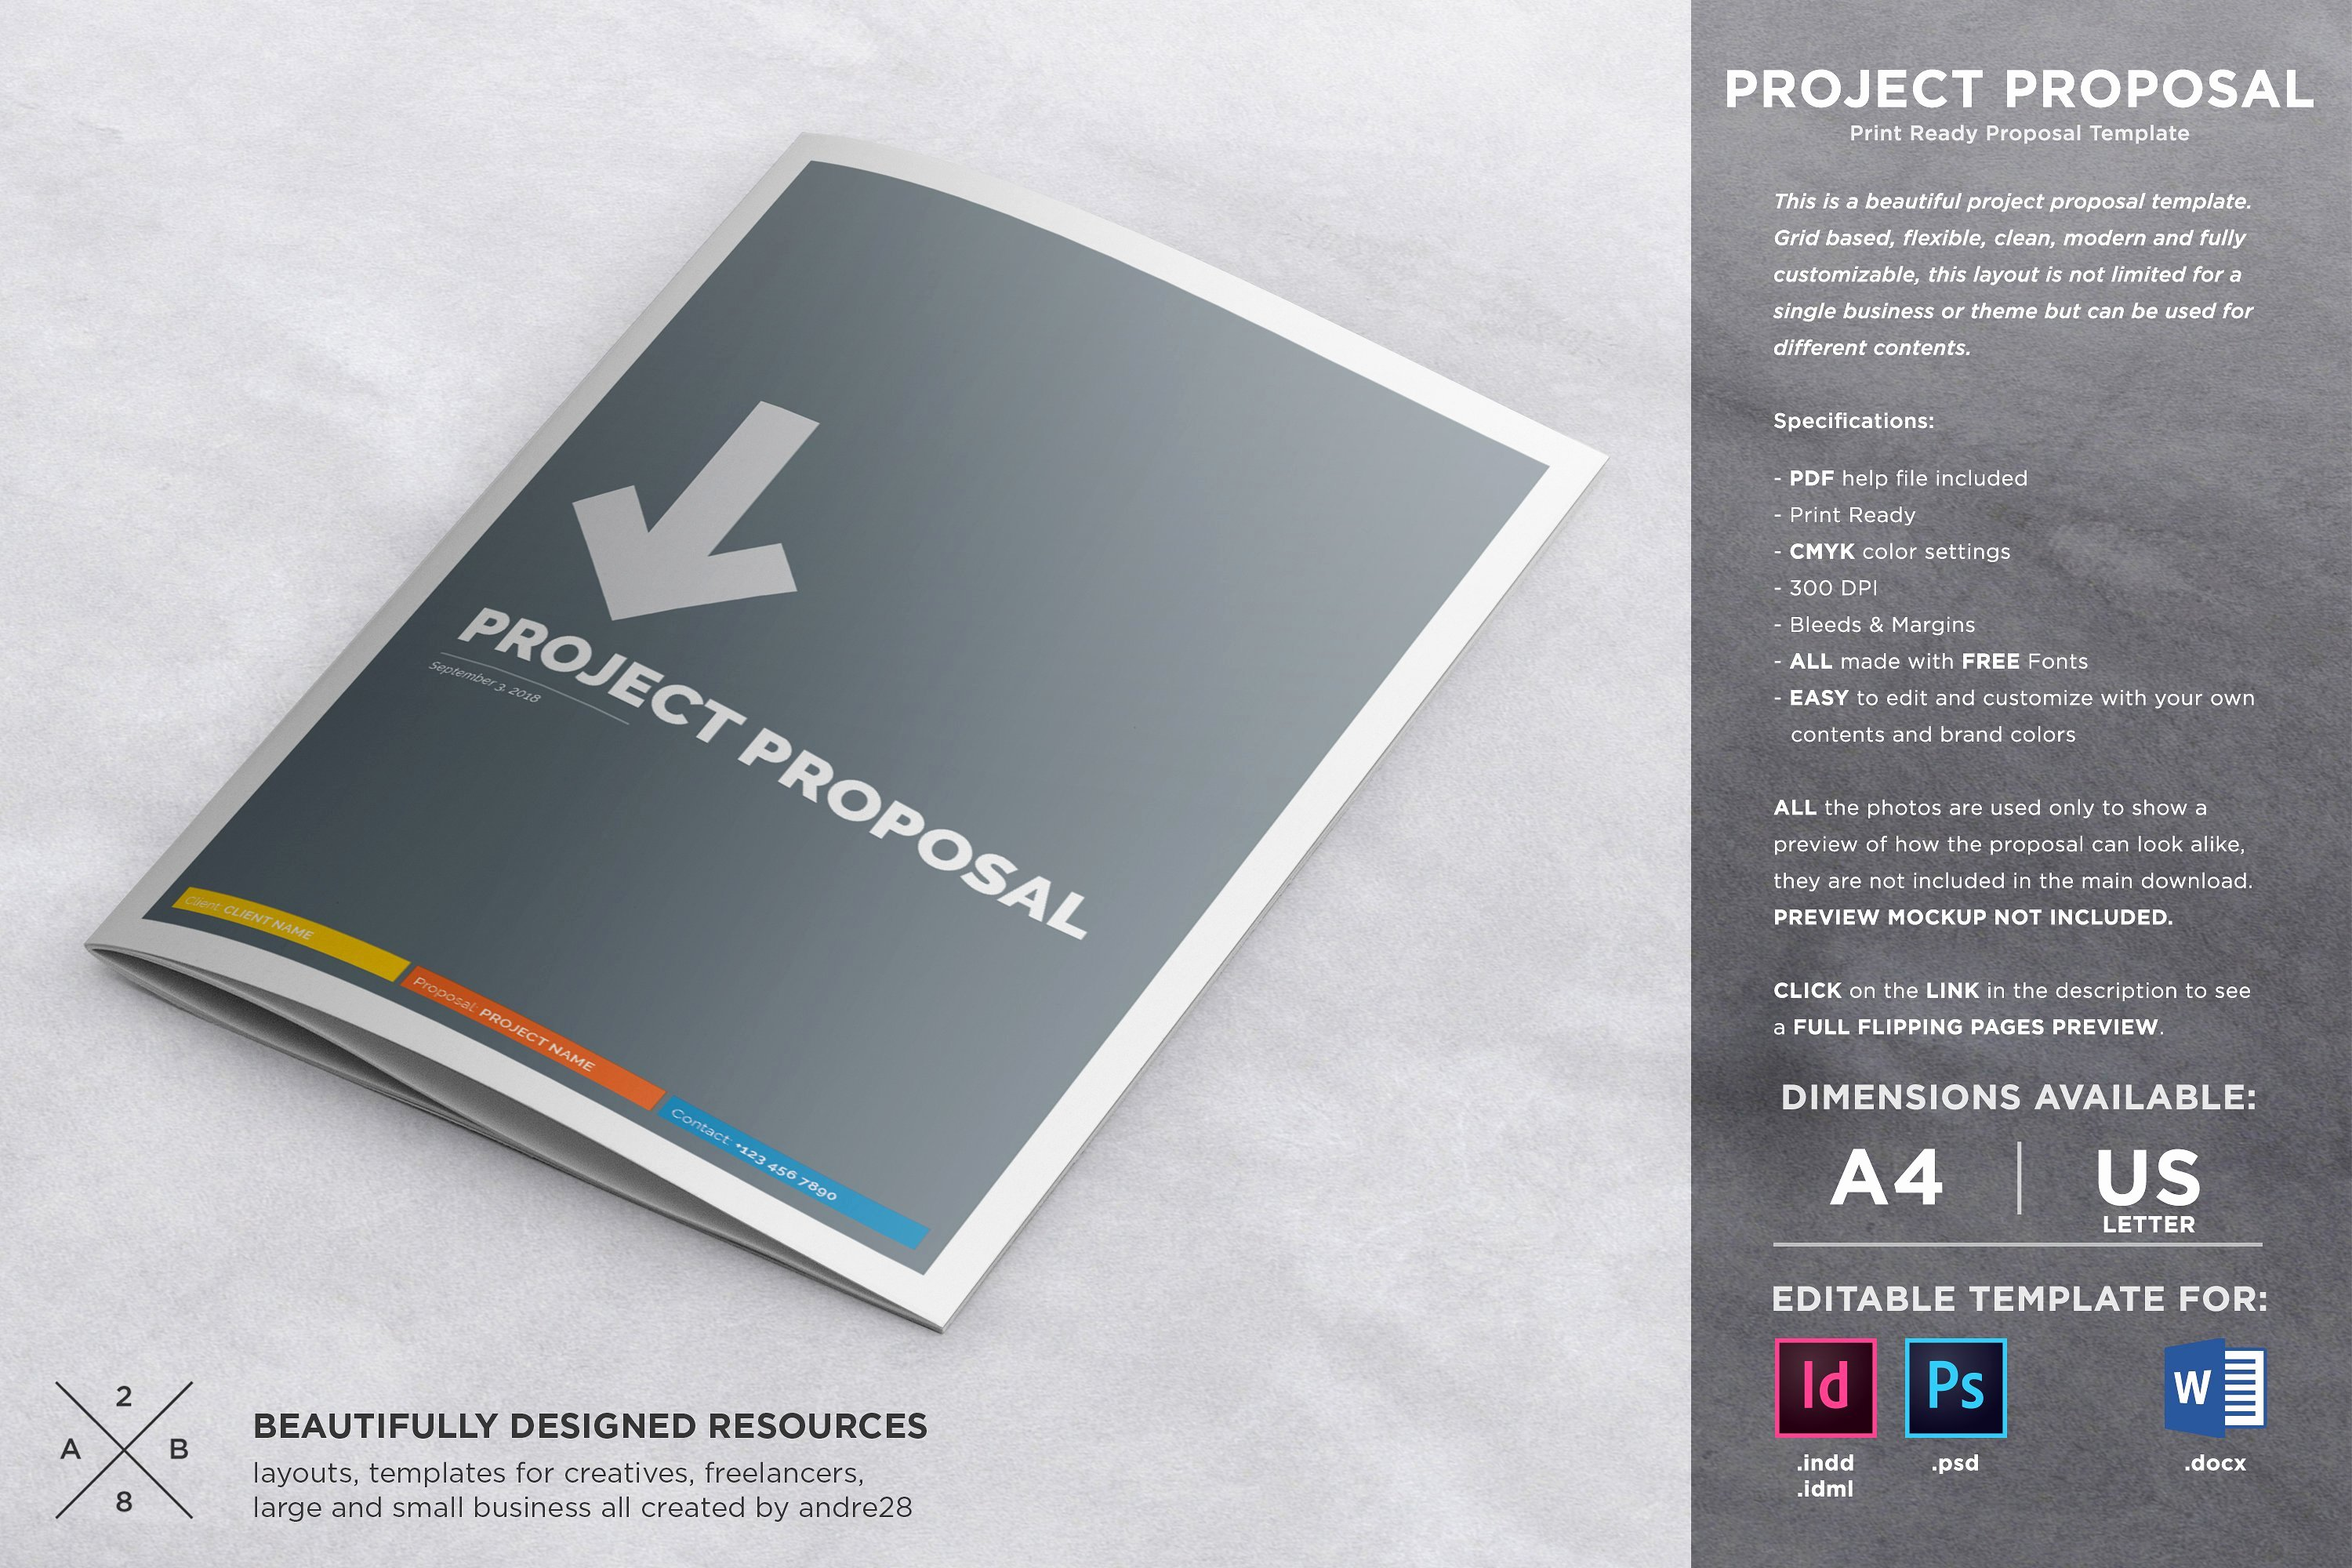 Graphic Design Proposal Template Inspirational Proposal Contract & Invoice Brochure Templates